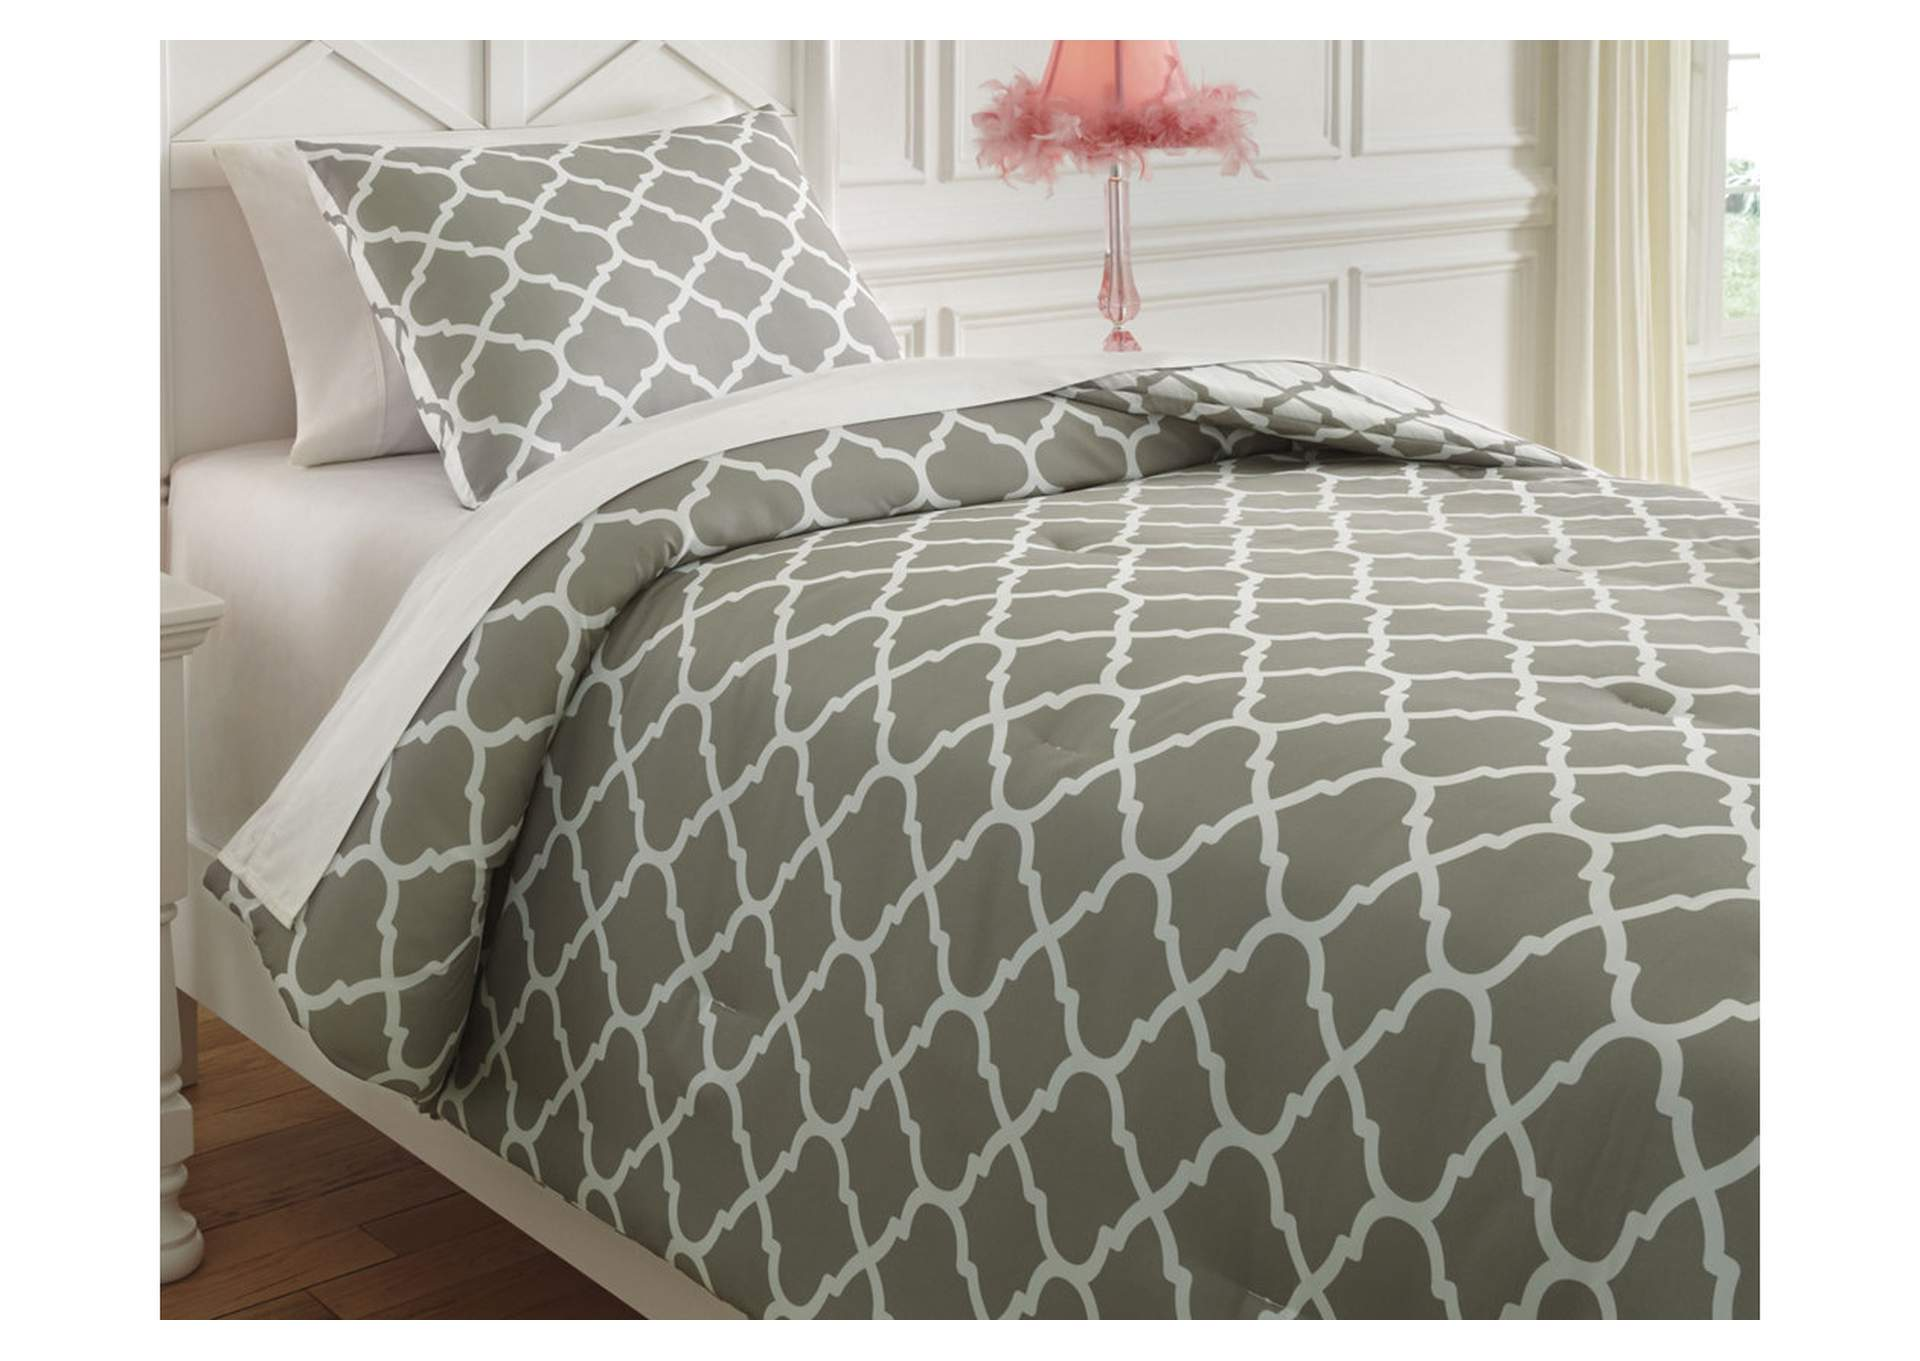 Media Gray/White Twin Comforter Set,Signature Design By Ashley